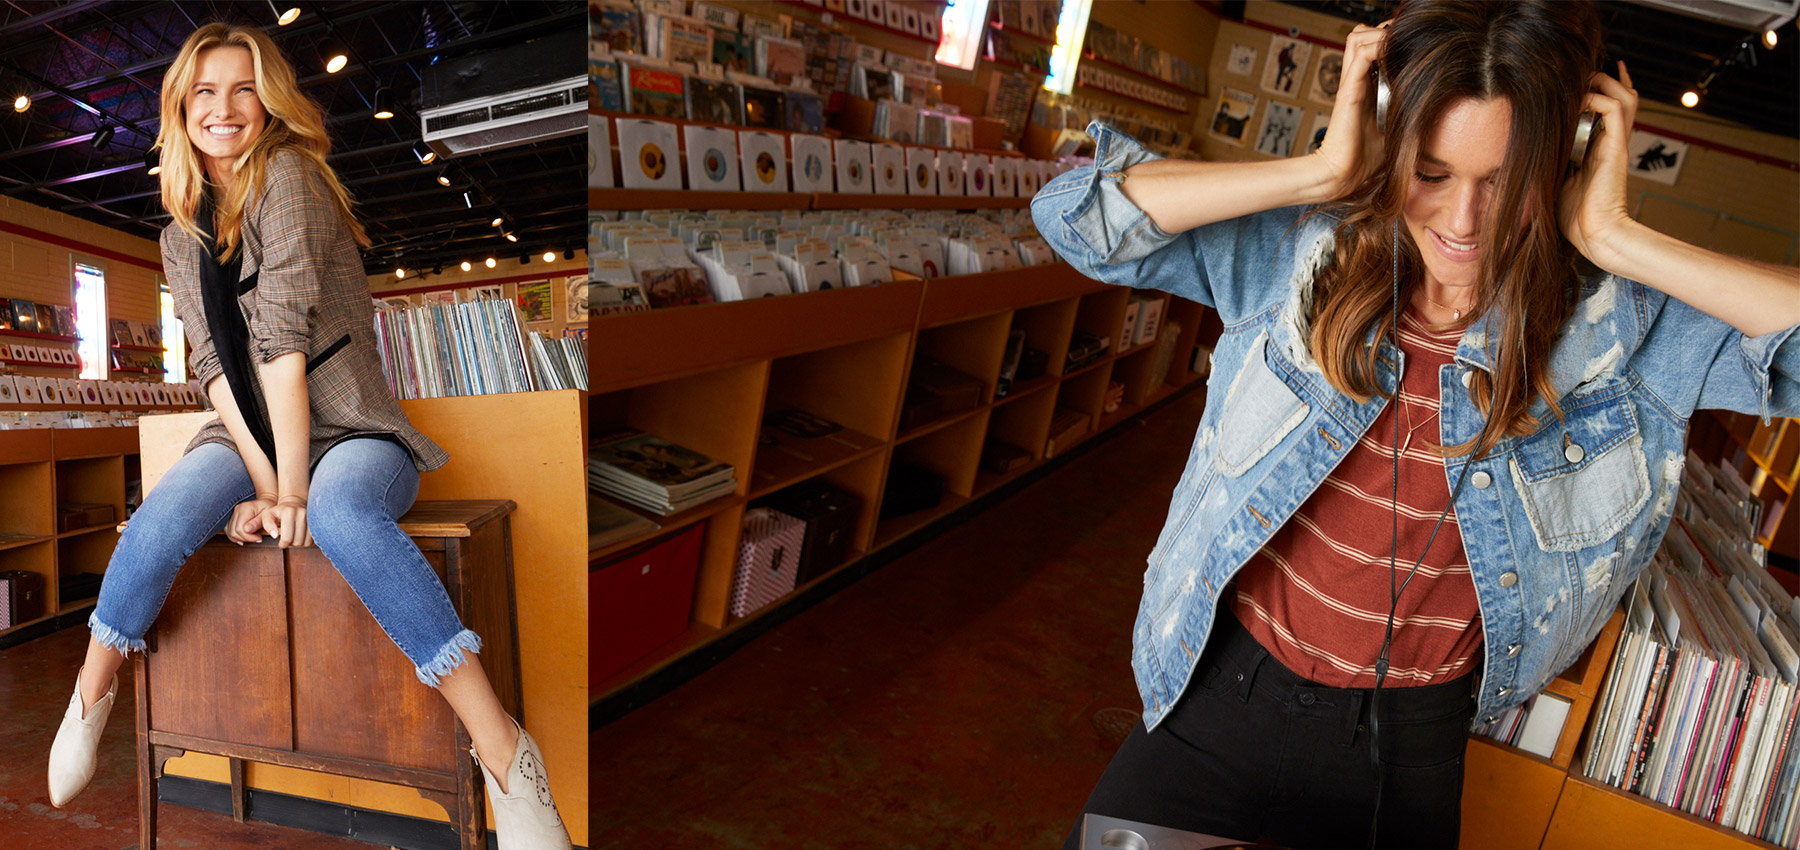 Smiling girl dancing with headphones on in record store, wearing destructed denim jacket and striped RVCA tee from Buckle.